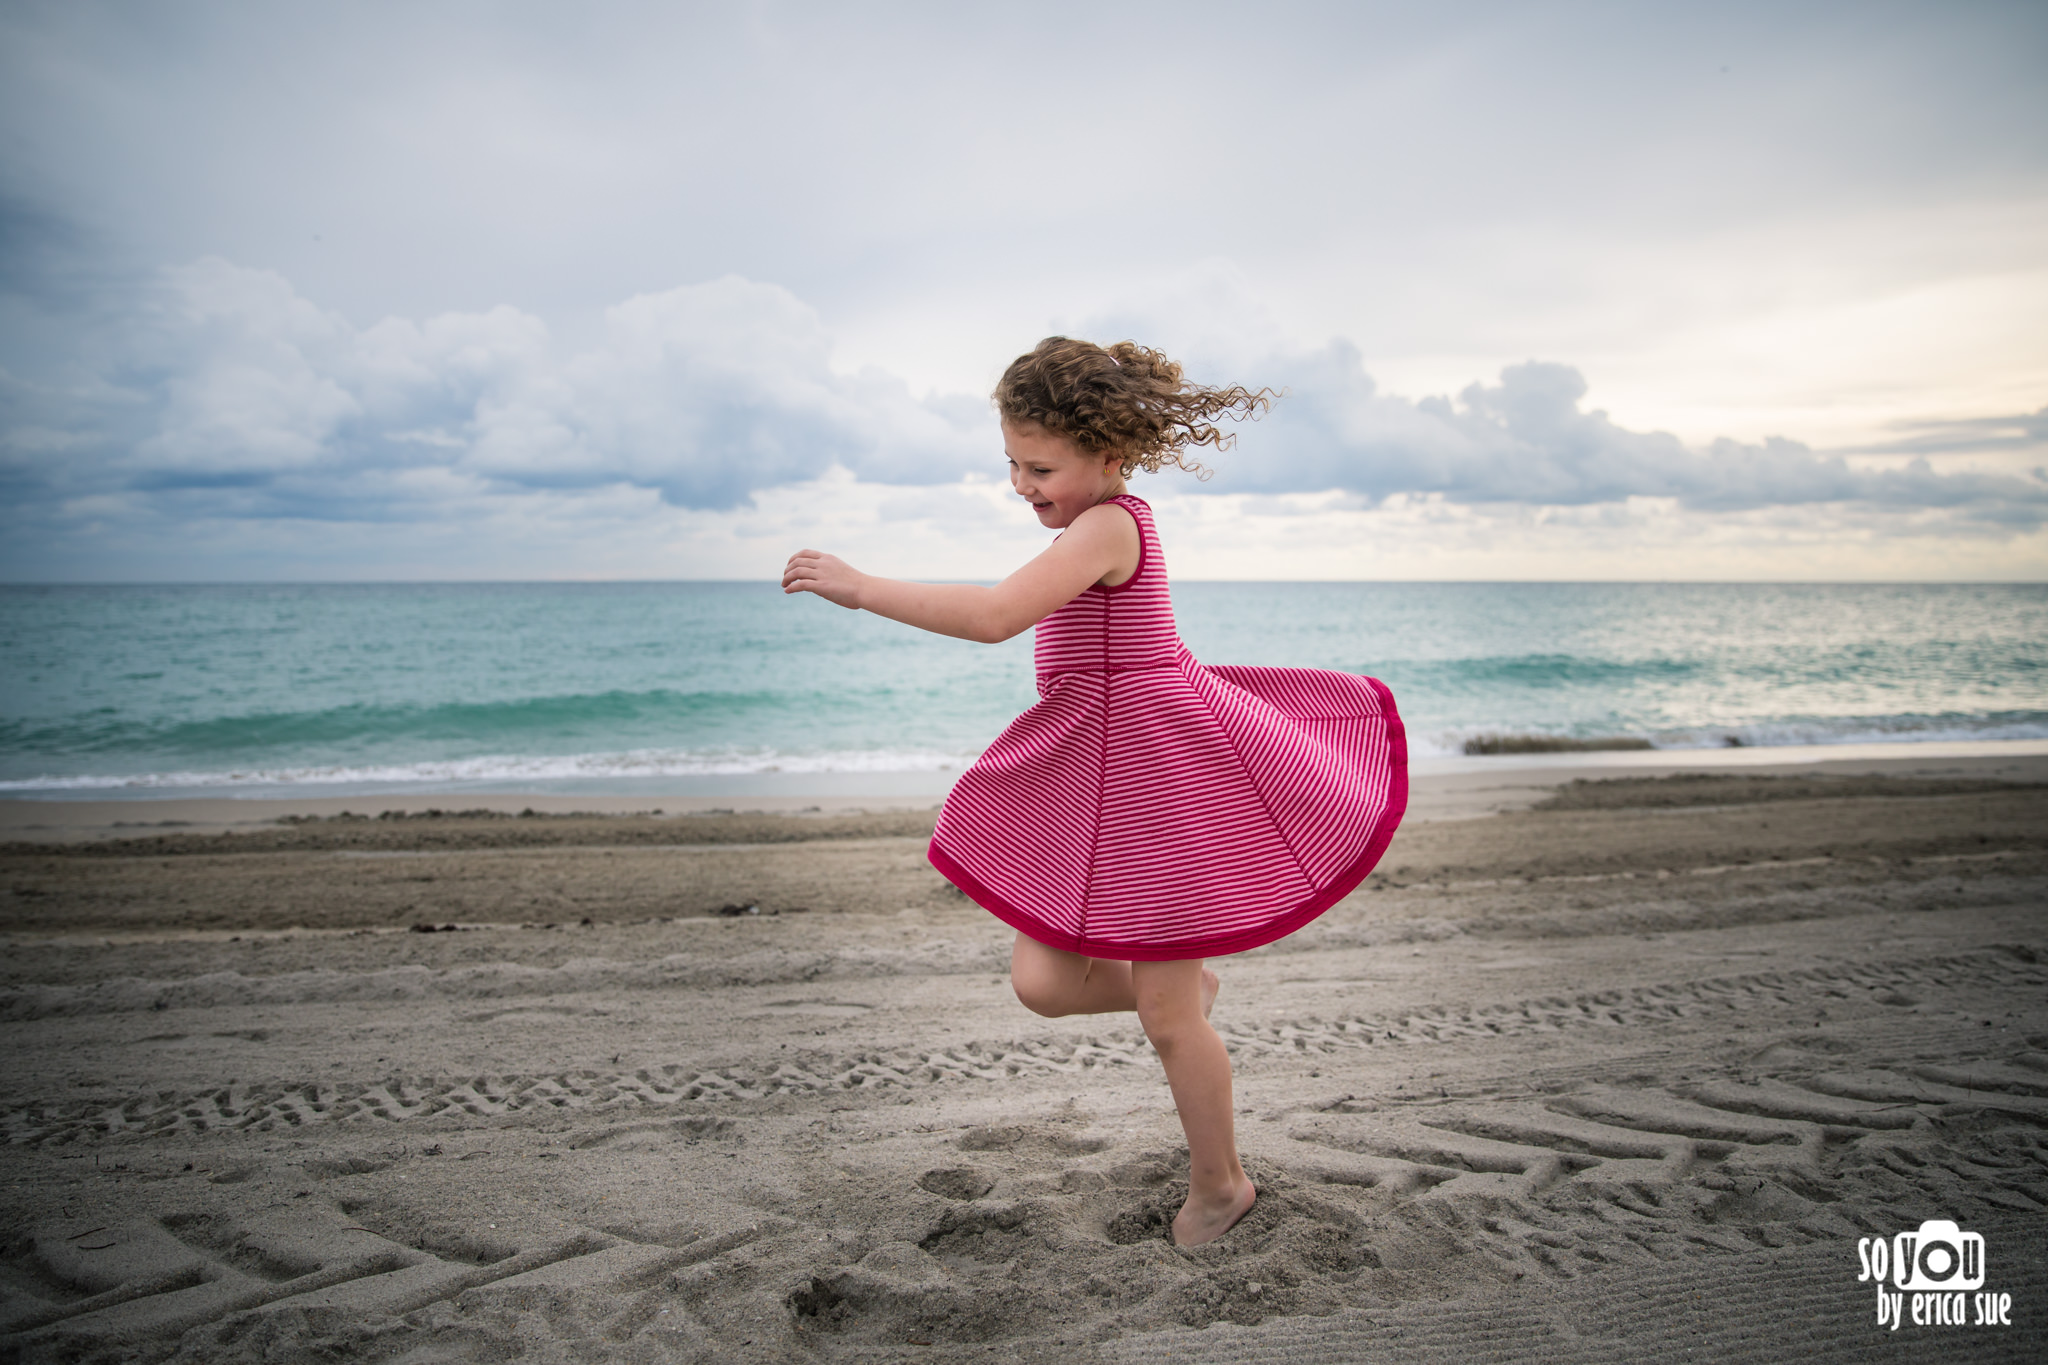 so-you-by-erica-sue-hollywood-beach-lifestyle-family-photographer-session-1047.JPG